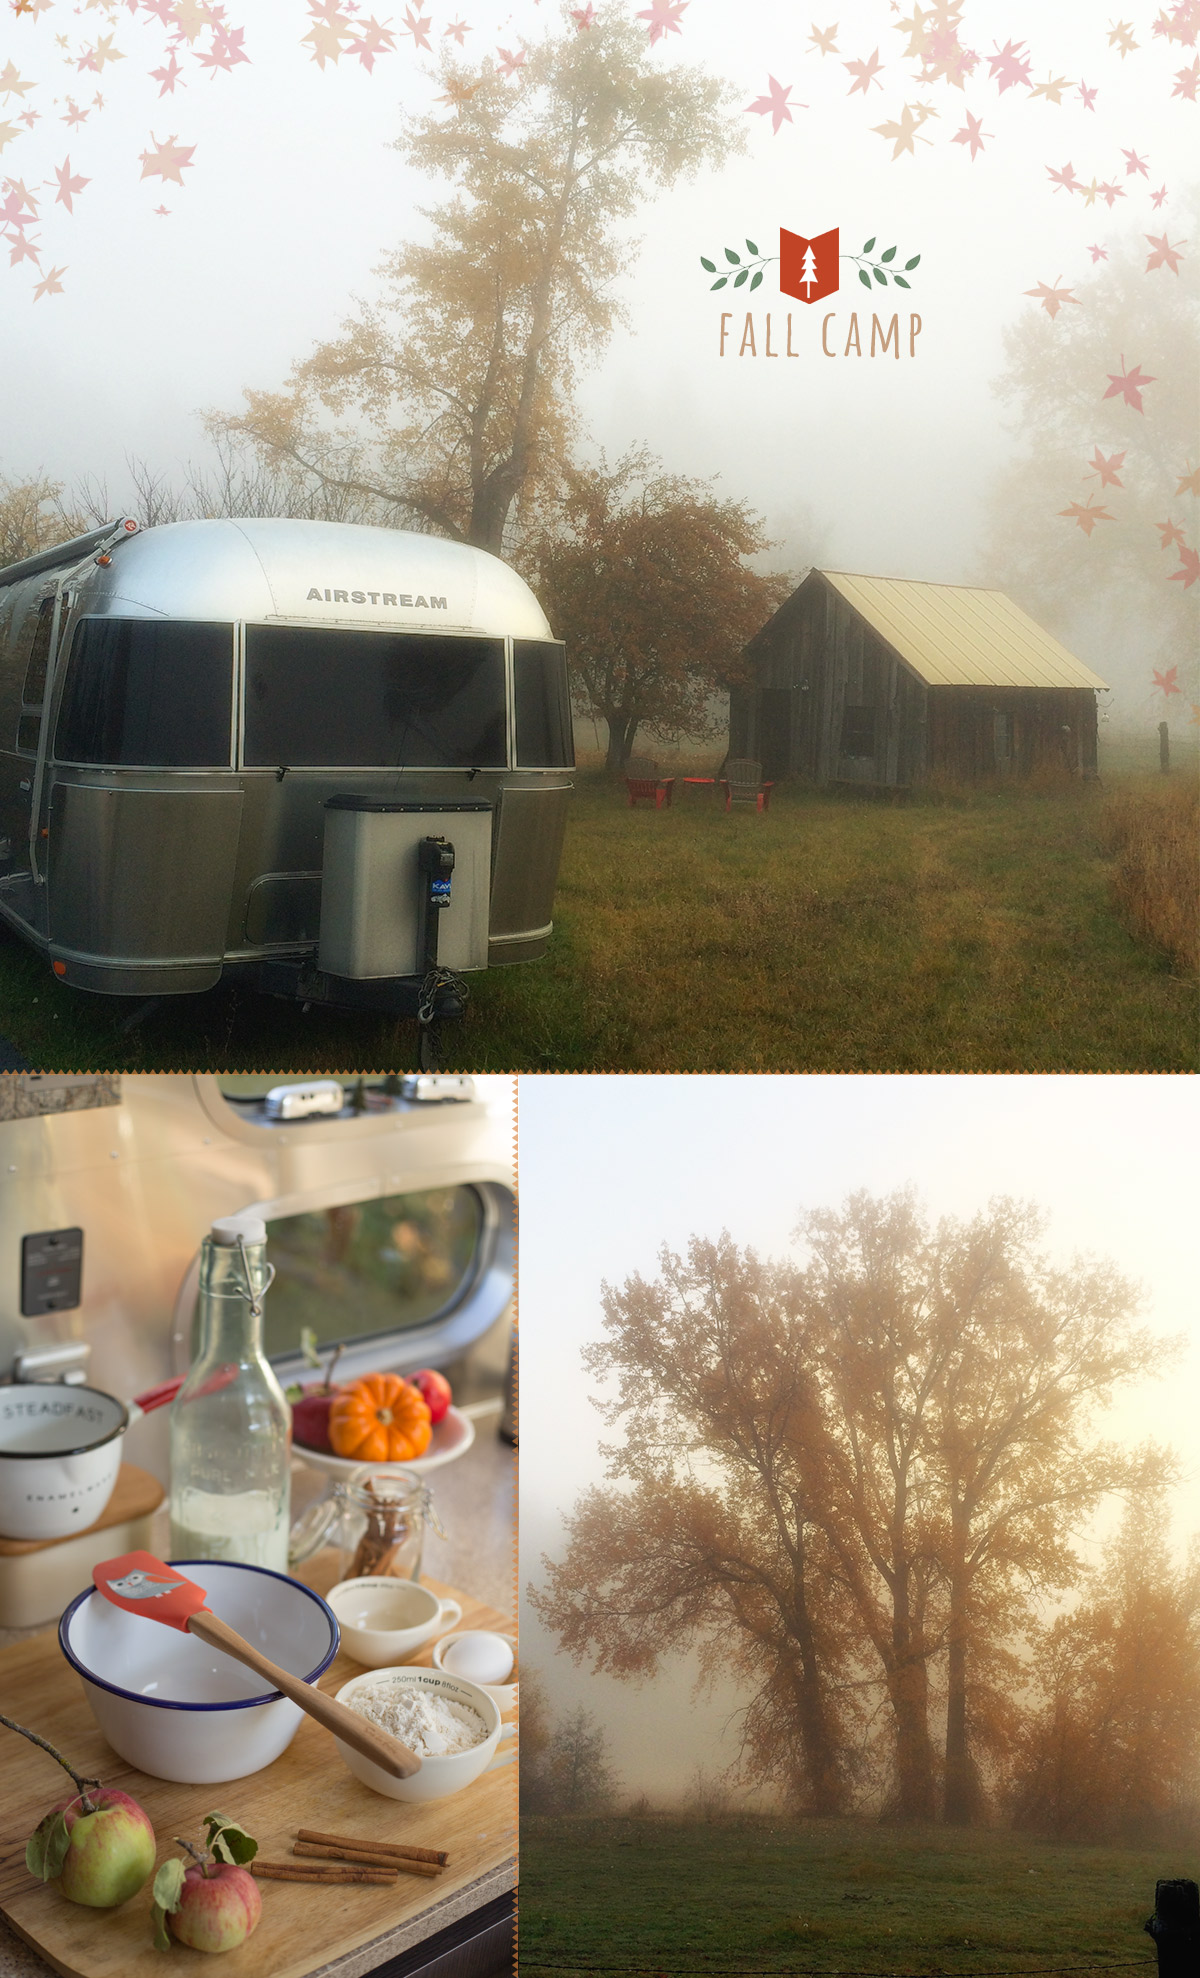 glamping breakfast in the Airstream